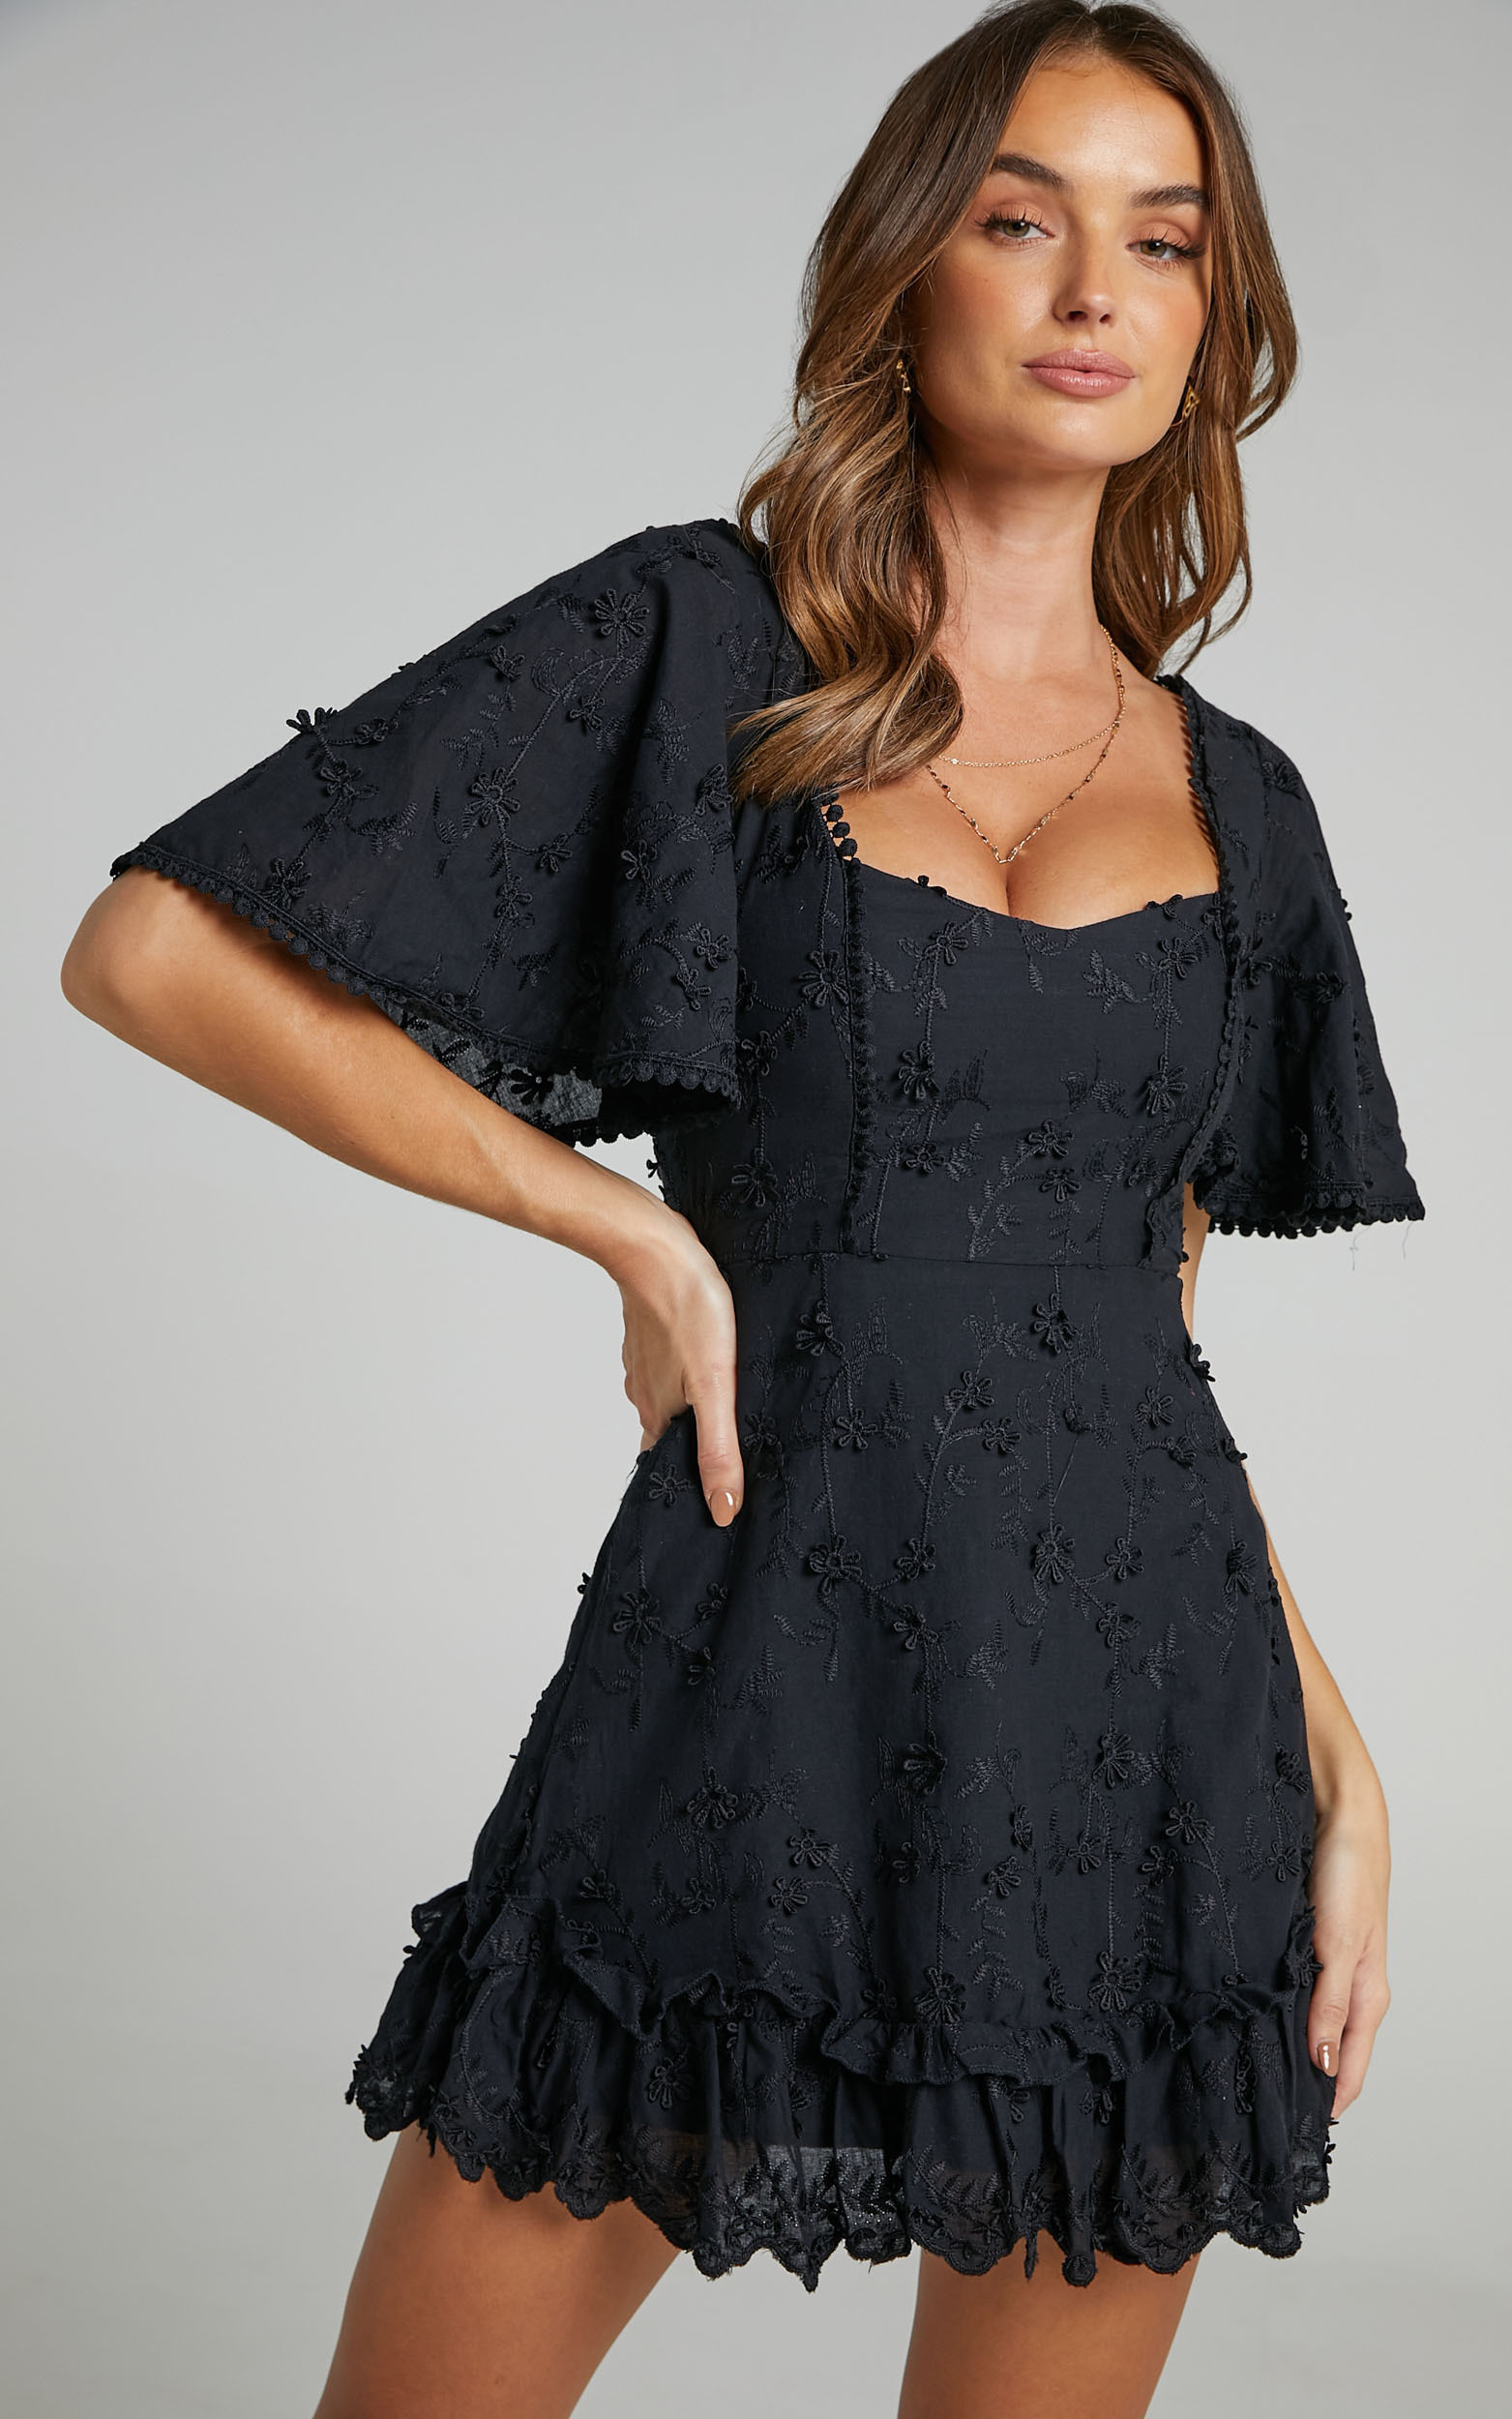 Fancy A Spritz Square Neck Mini Dress in Black Embroidery - 20, BLK1, hi-res image number null